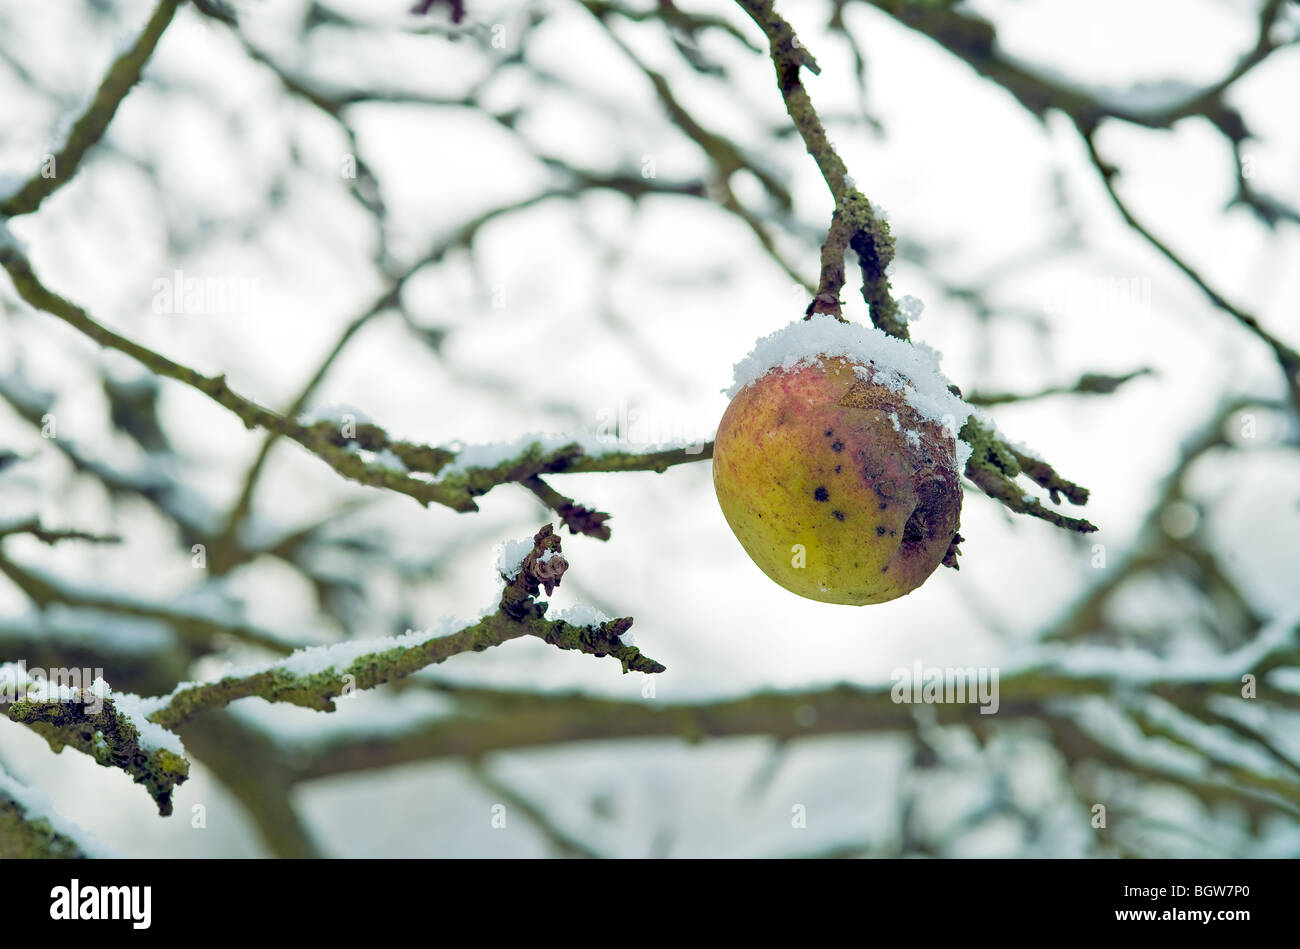 Bad old apple that has not fallen, caught in the snow Stock Photo